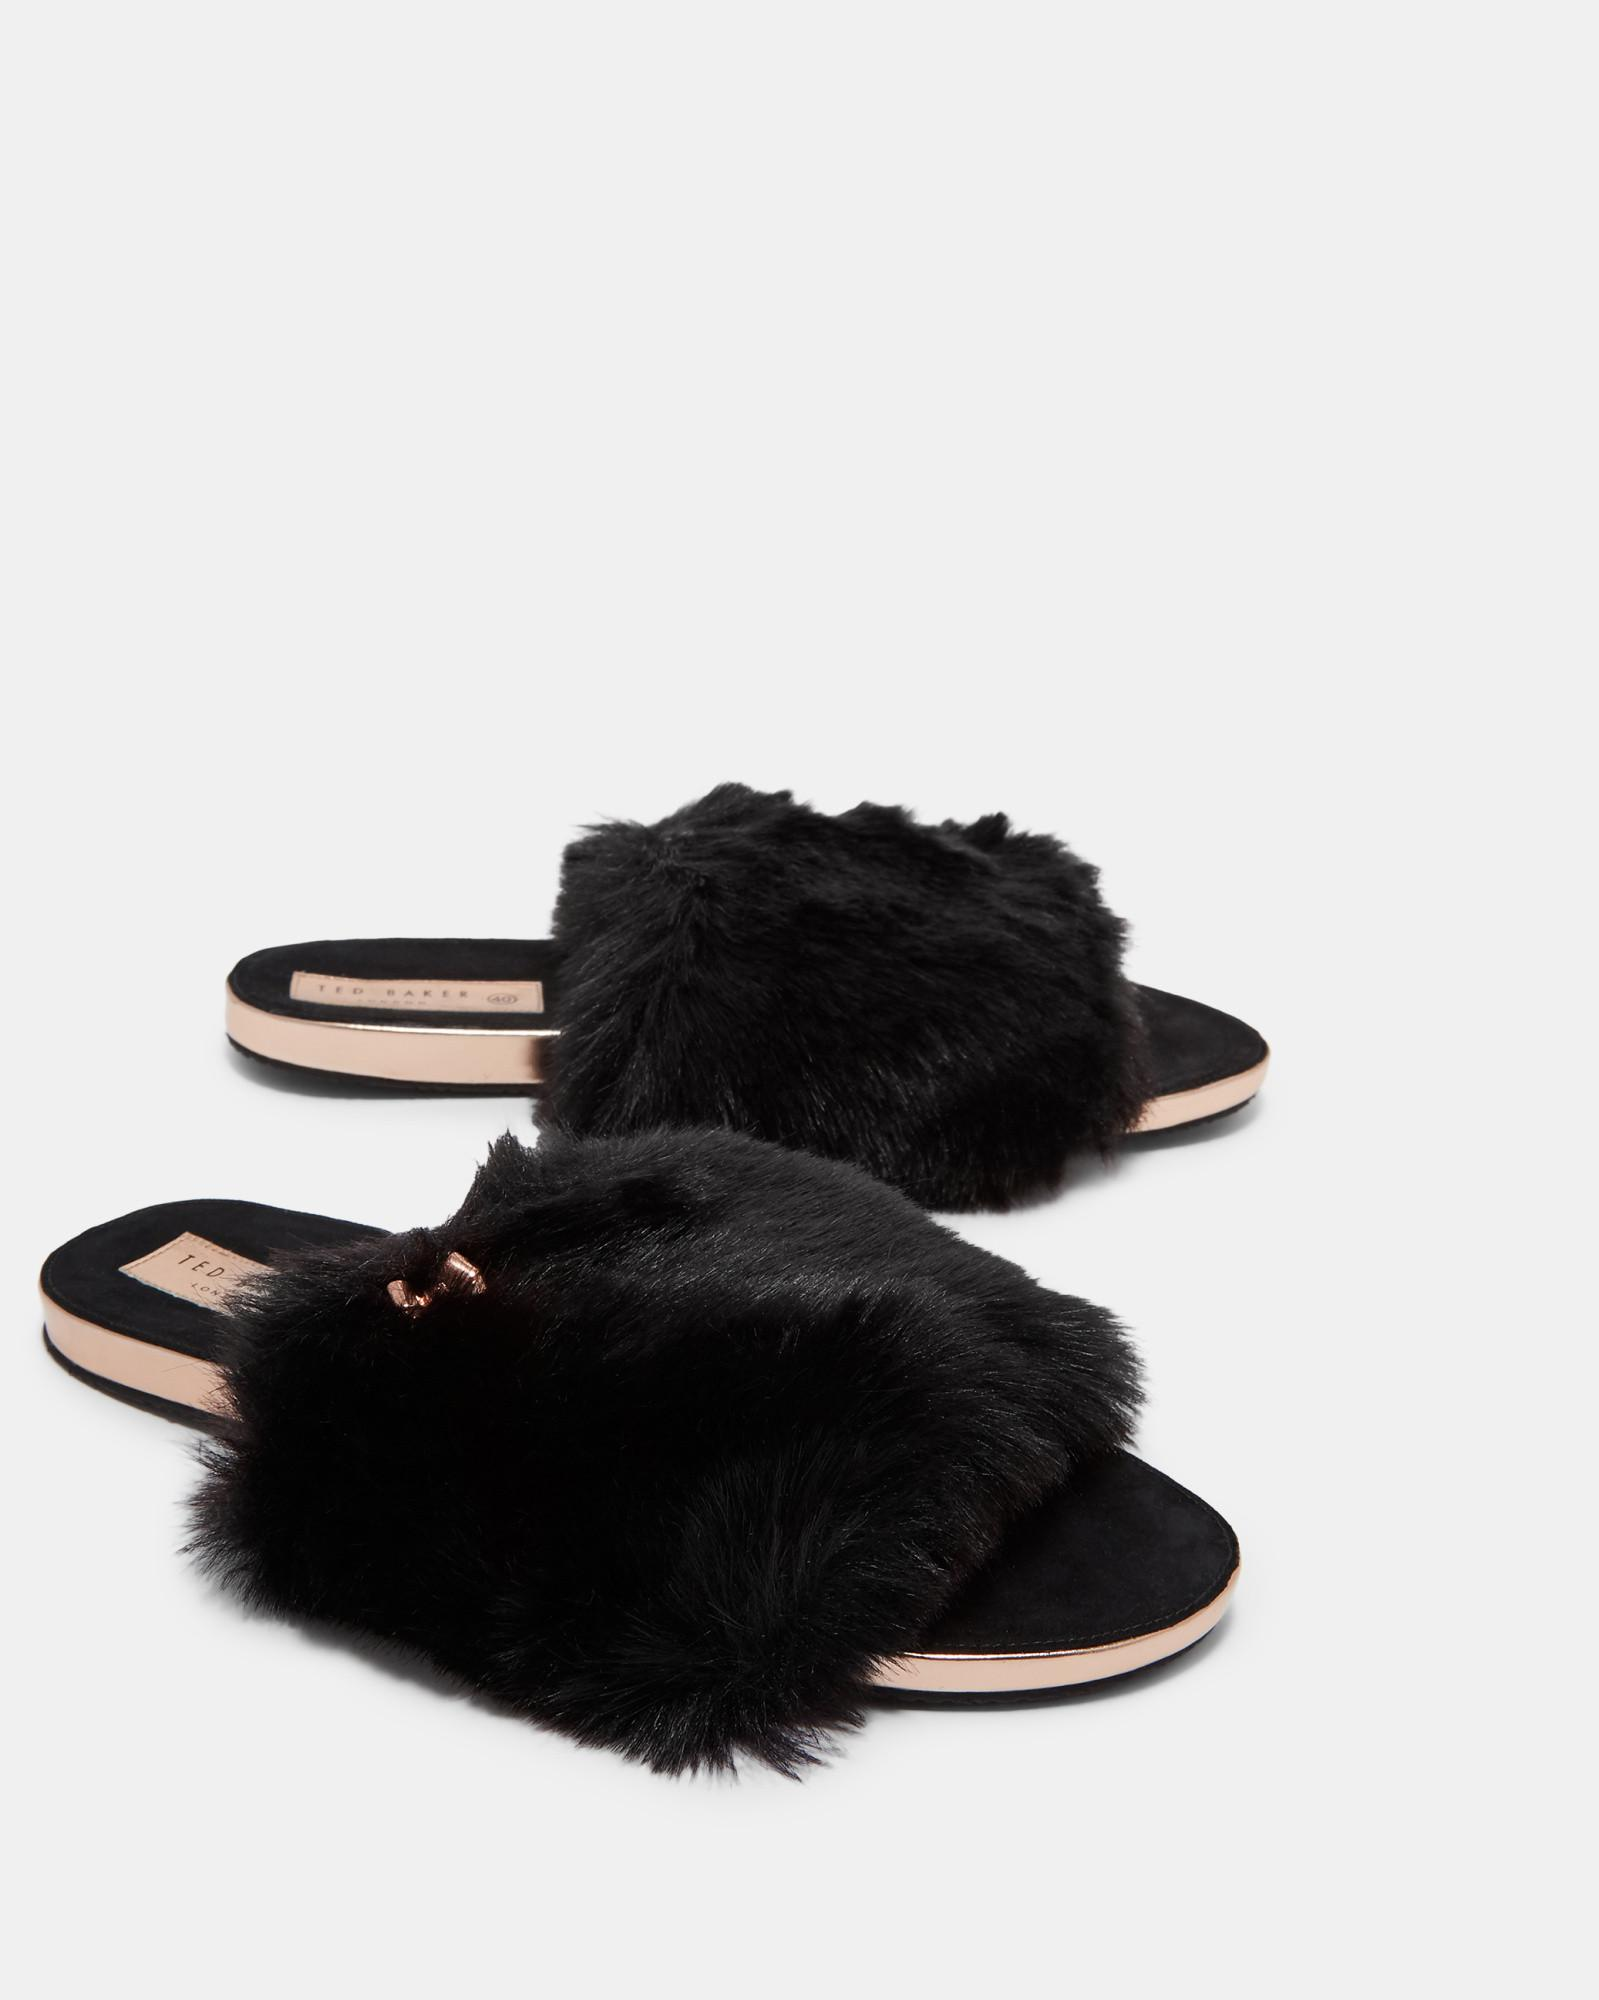 55c713ce541f6a Ted Baker Faux Fur Sliders in Black - Lyst